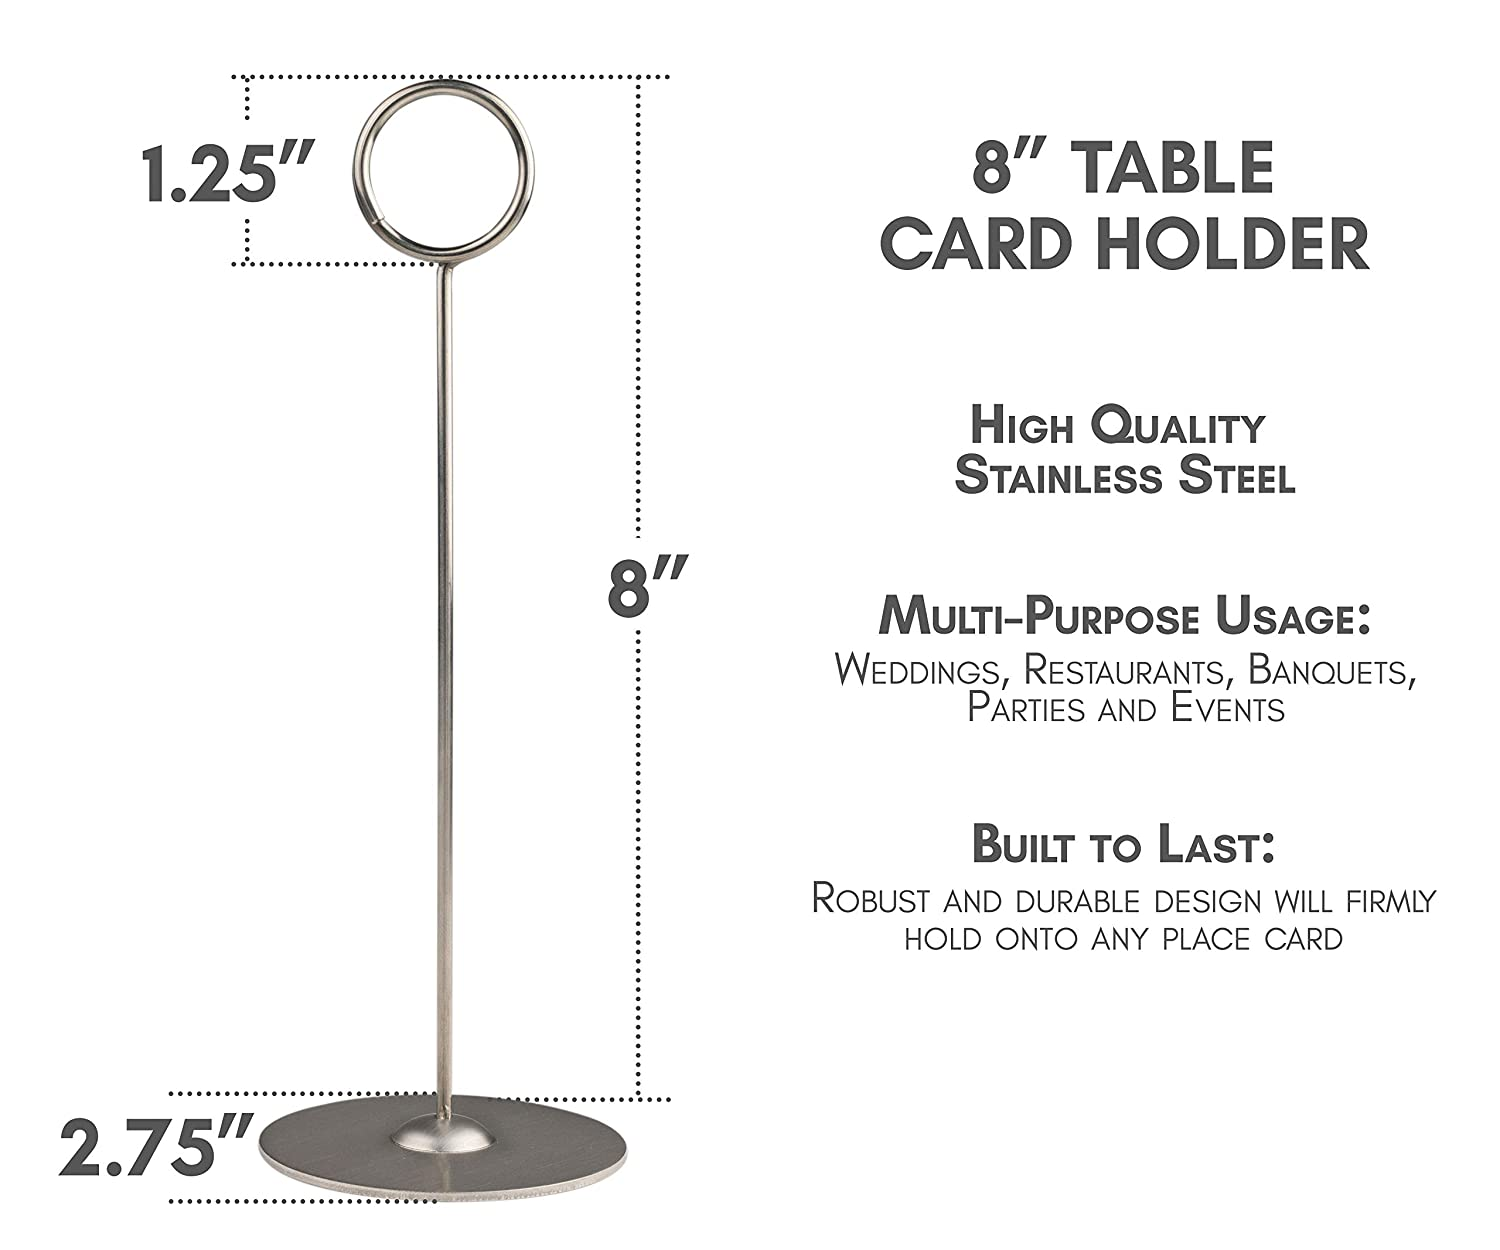 """Table Card Holders 15 Pack Banquets Table Number Stands Table Number Holders Qualitts 8/"""" Place Card Holders Parties Table Photo Holder for Weddings"""